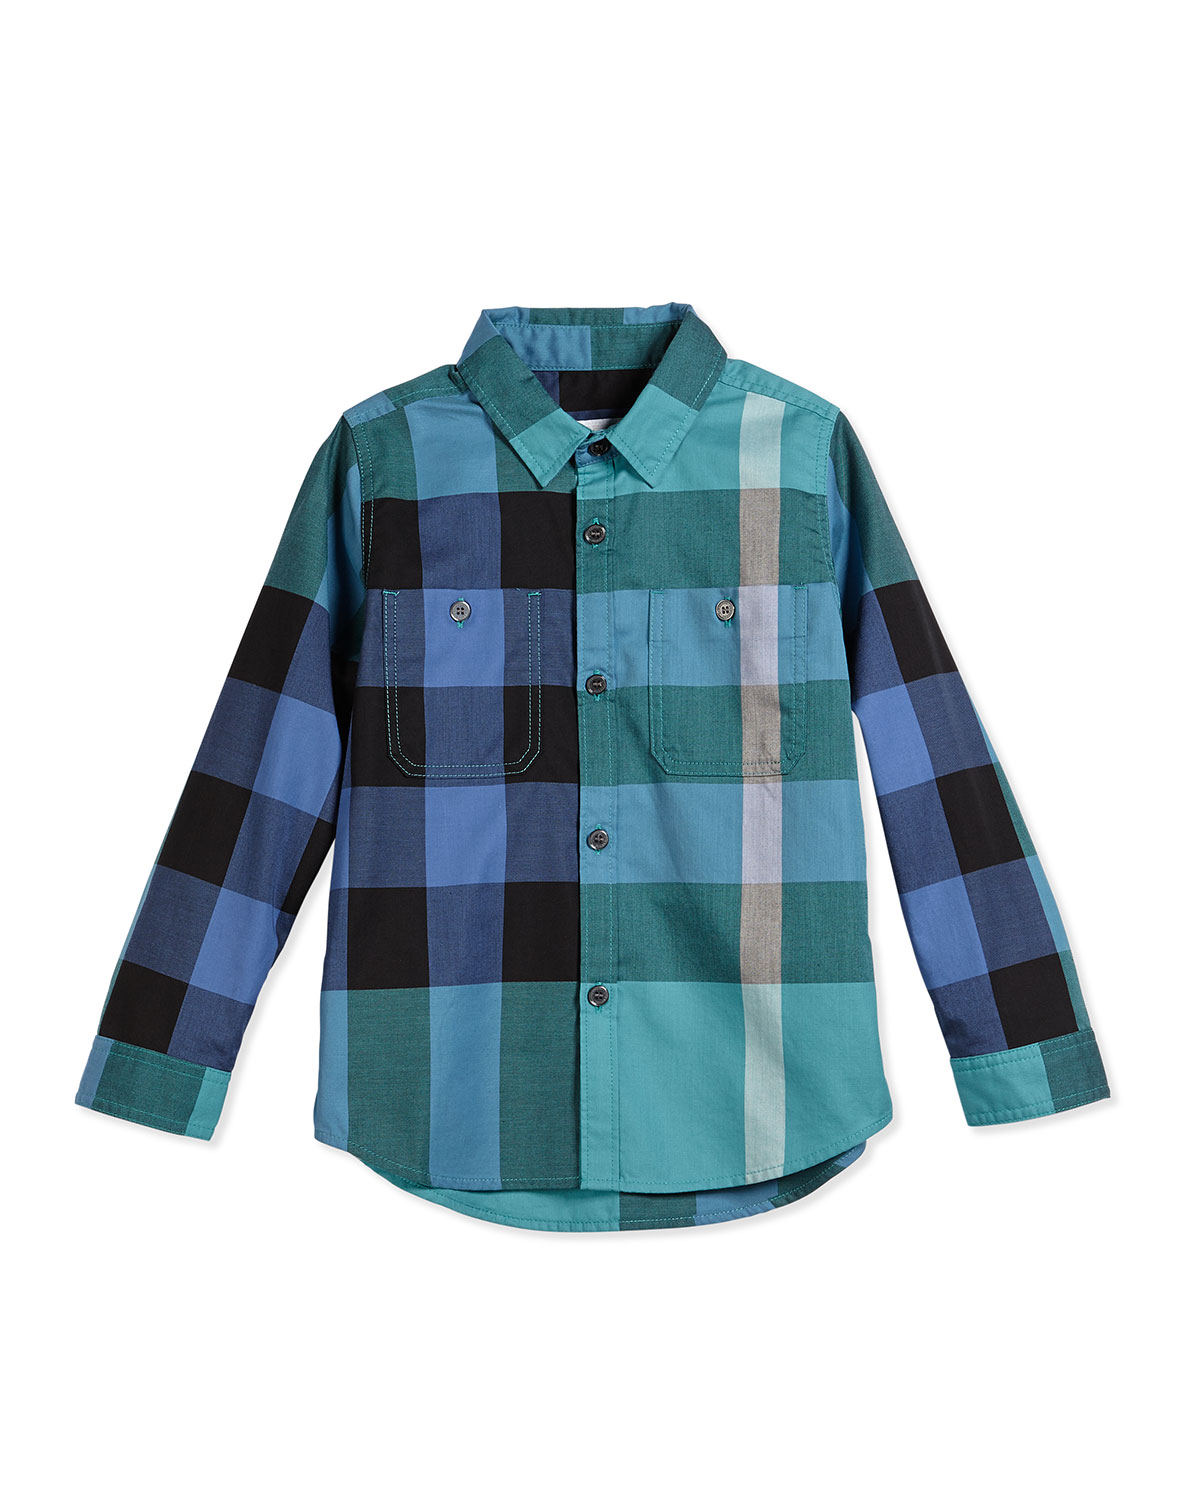 Mini Camber Long-Sleeve Check Poplin Shirt, Cyan/Green, Size 4Y-14Y